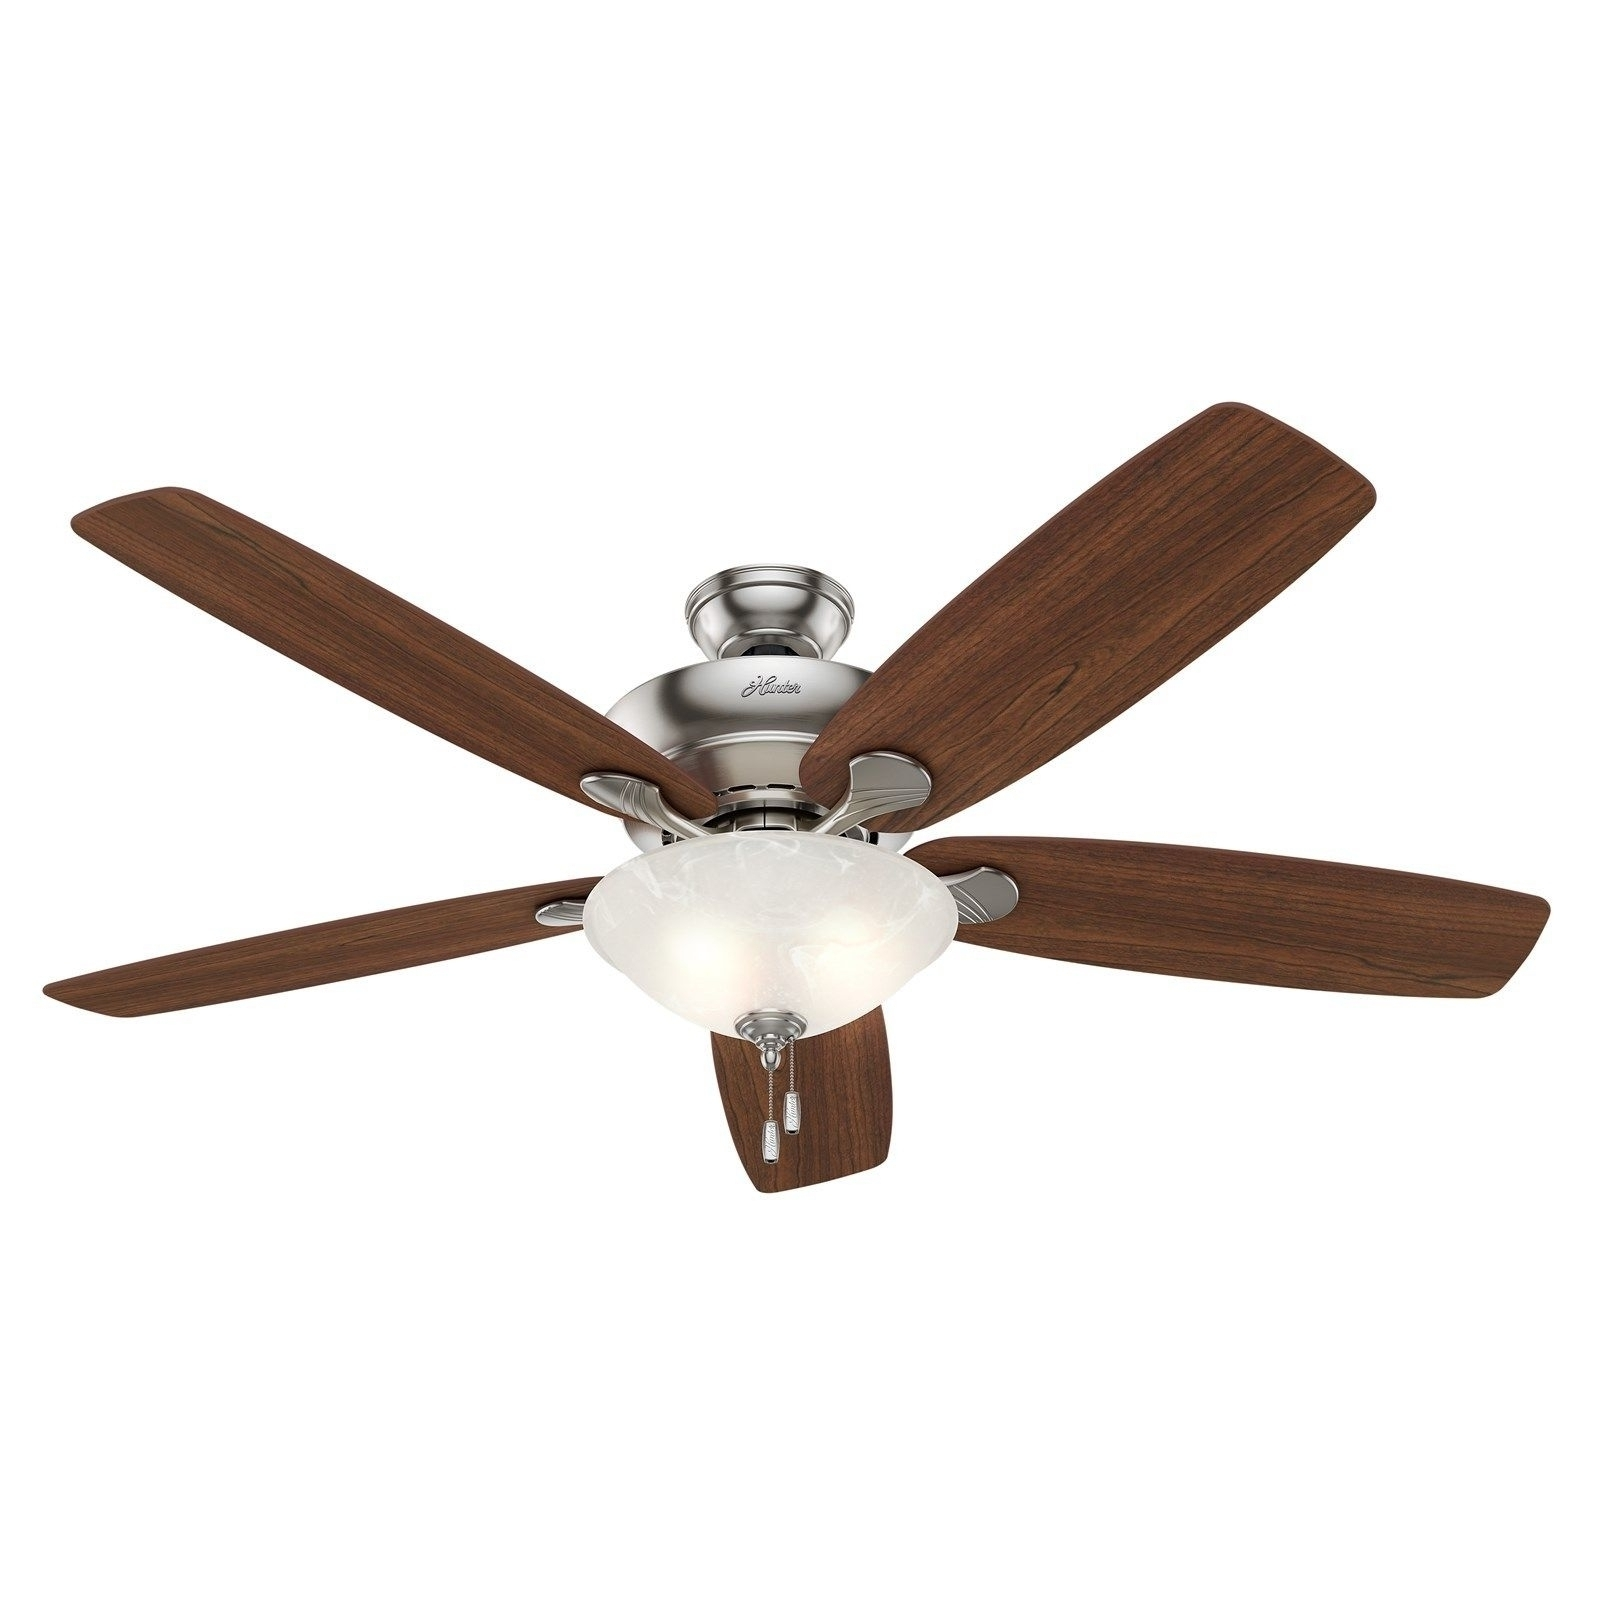 79 Amazing Industrial Ceiling Fans With Lightss With 2018 Outdoor Ceiling Fans With Lights At Ebay (View 1 of 20)